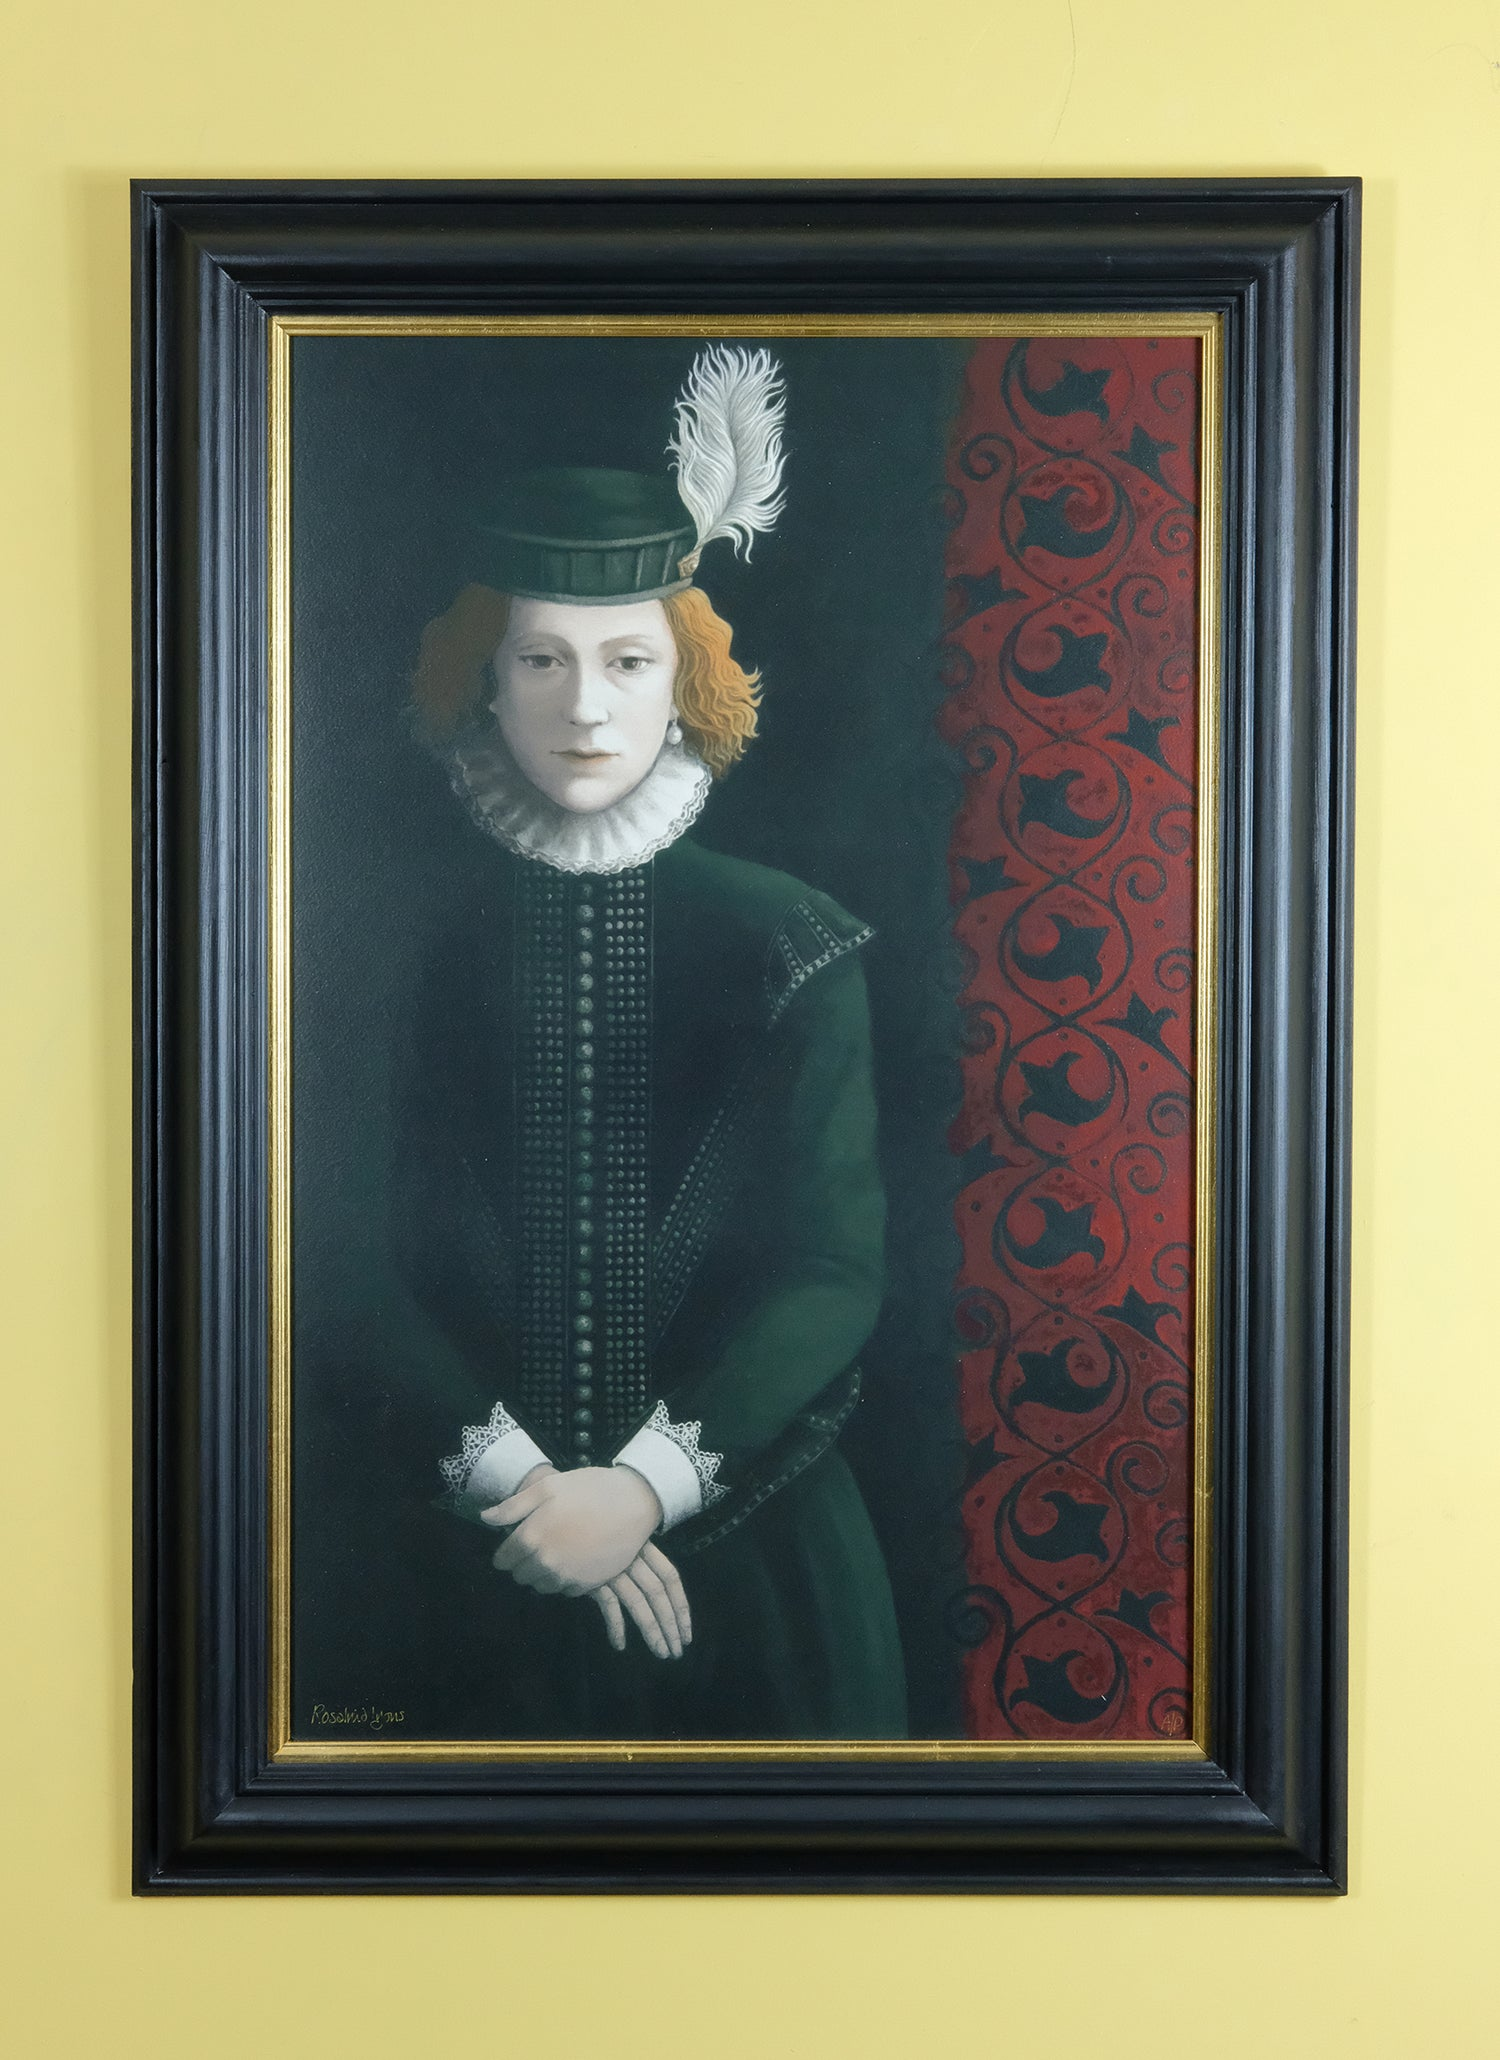 Image of ROSALIND LYONS - 'I PRAY THEE, CONCEAL ME WHAT I AM' - LIMITED EDITION FINE ART PRINT